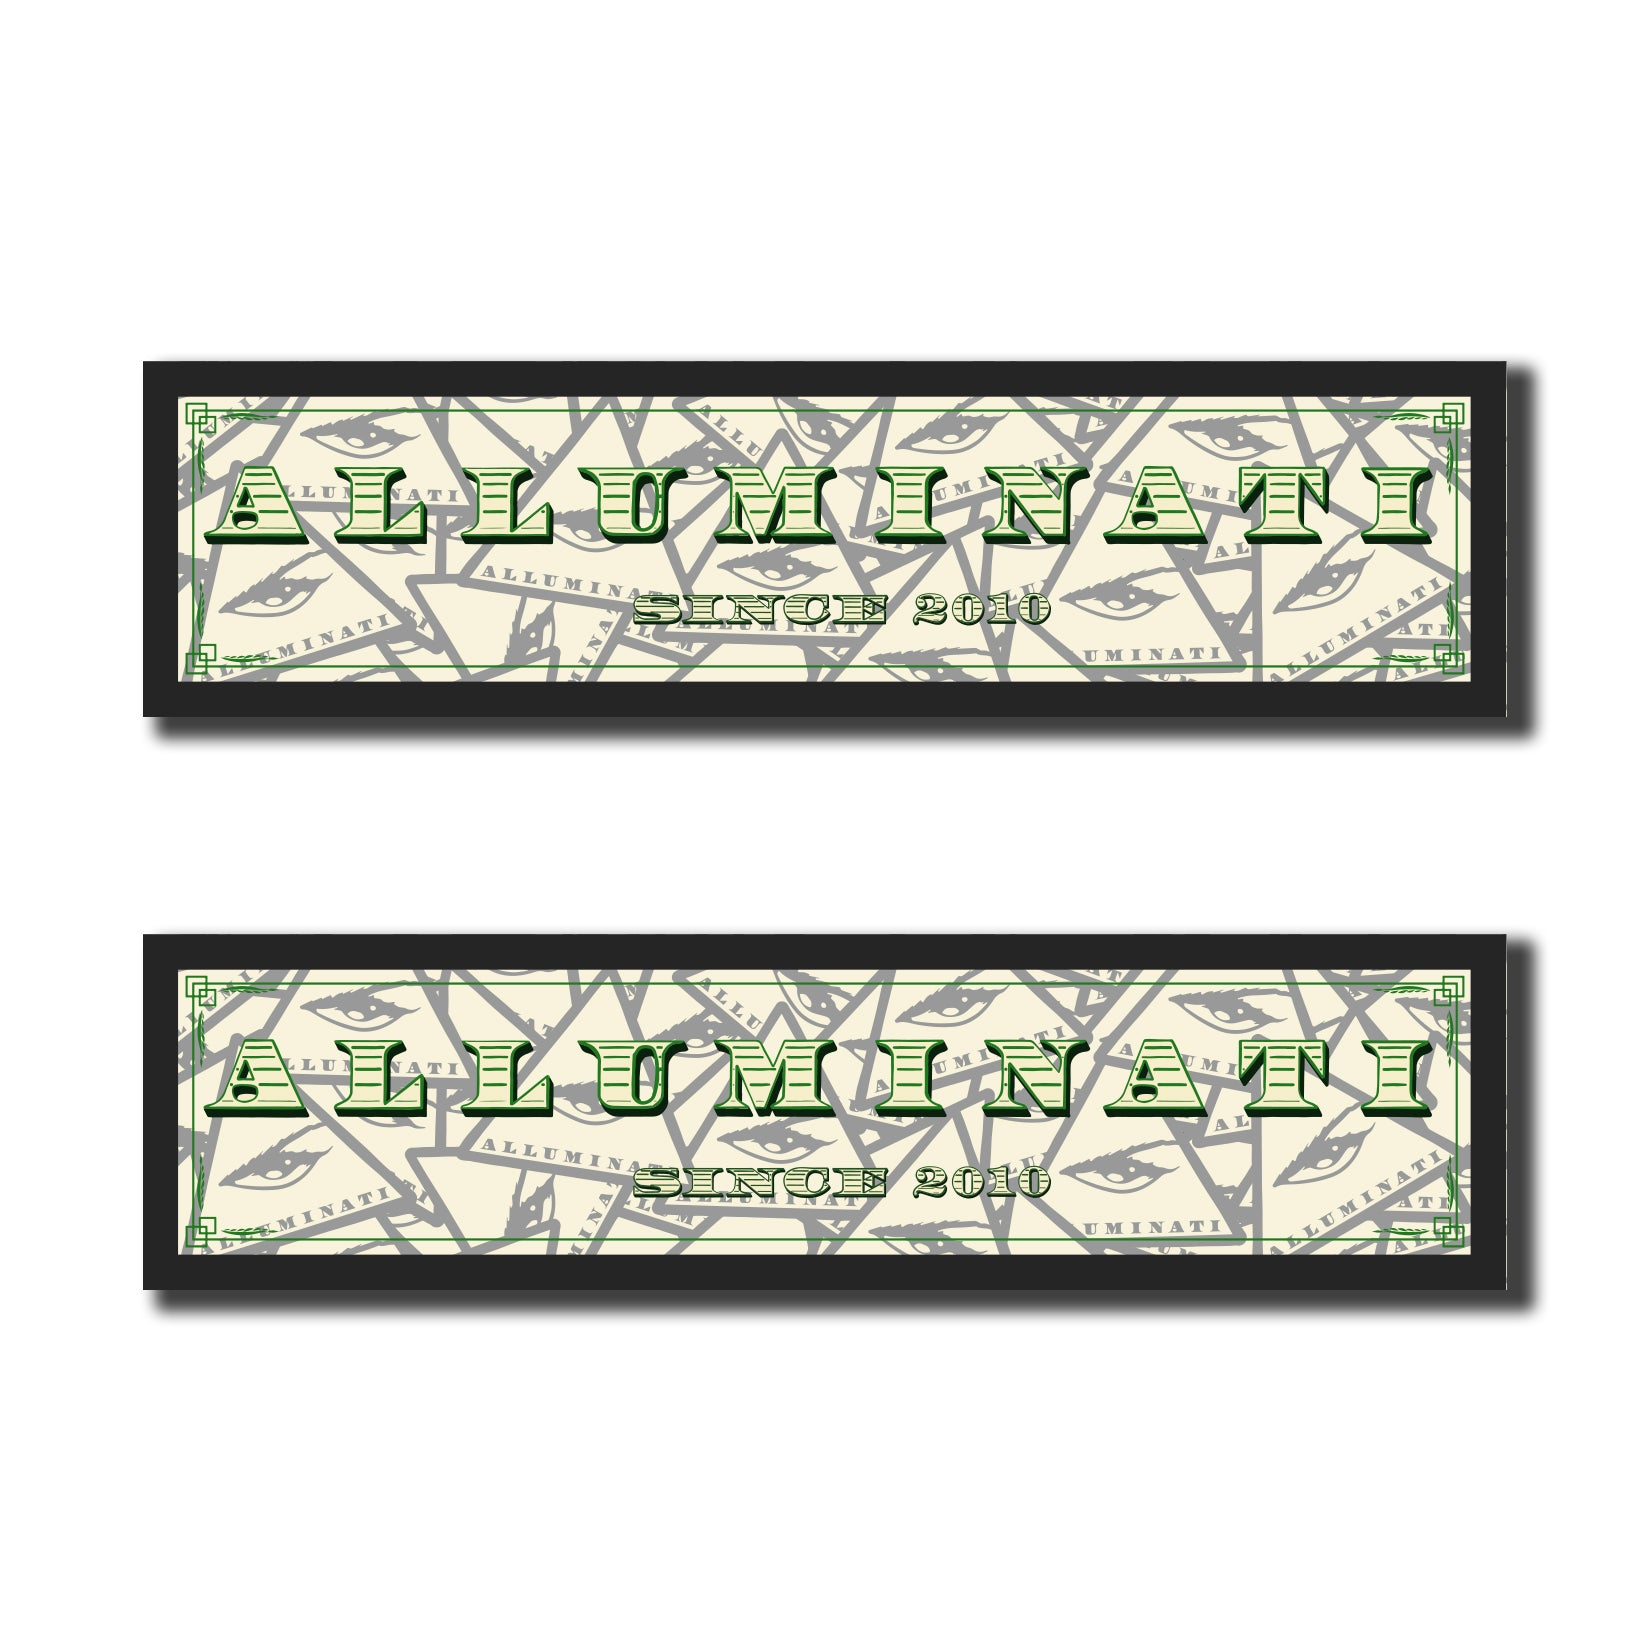 Alluminati Bumper Sticker Pack